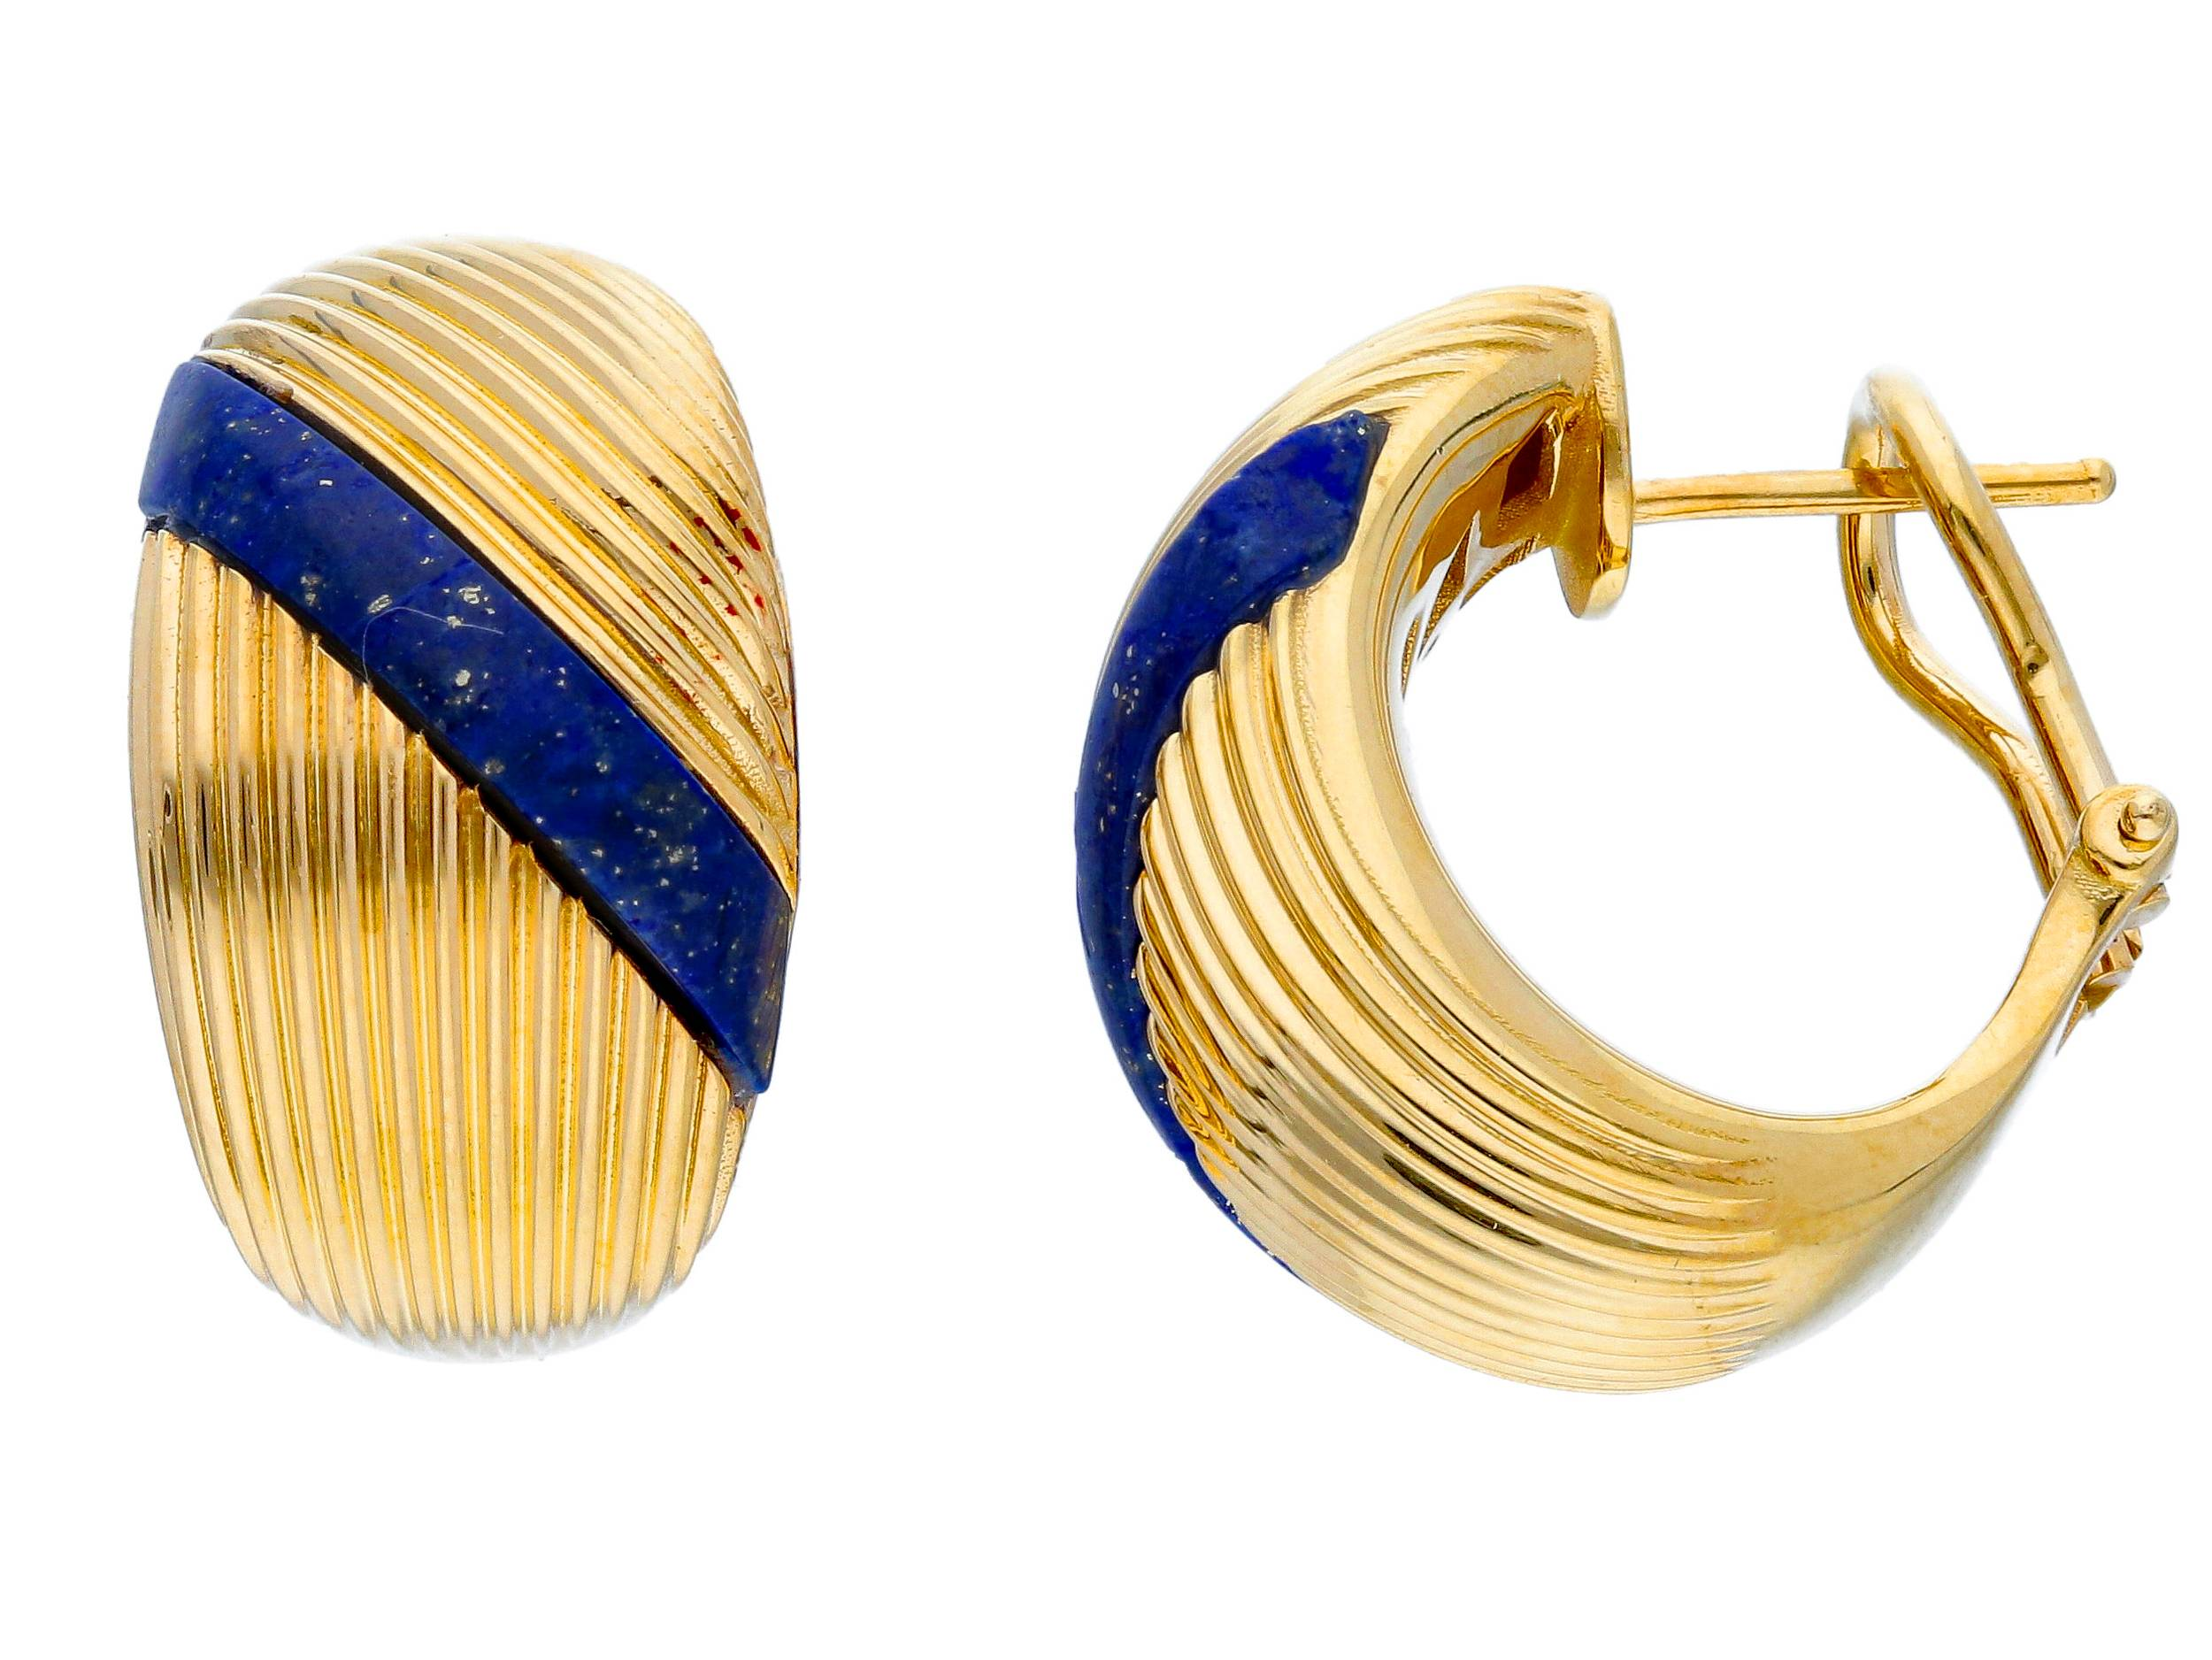 Beautiful 18ct Yellow Gold Stud/Clip Earrings with a blue stone.We have different colours of the stones available . Contact us for more information about the colours of enamel, gold and stones in our shop.